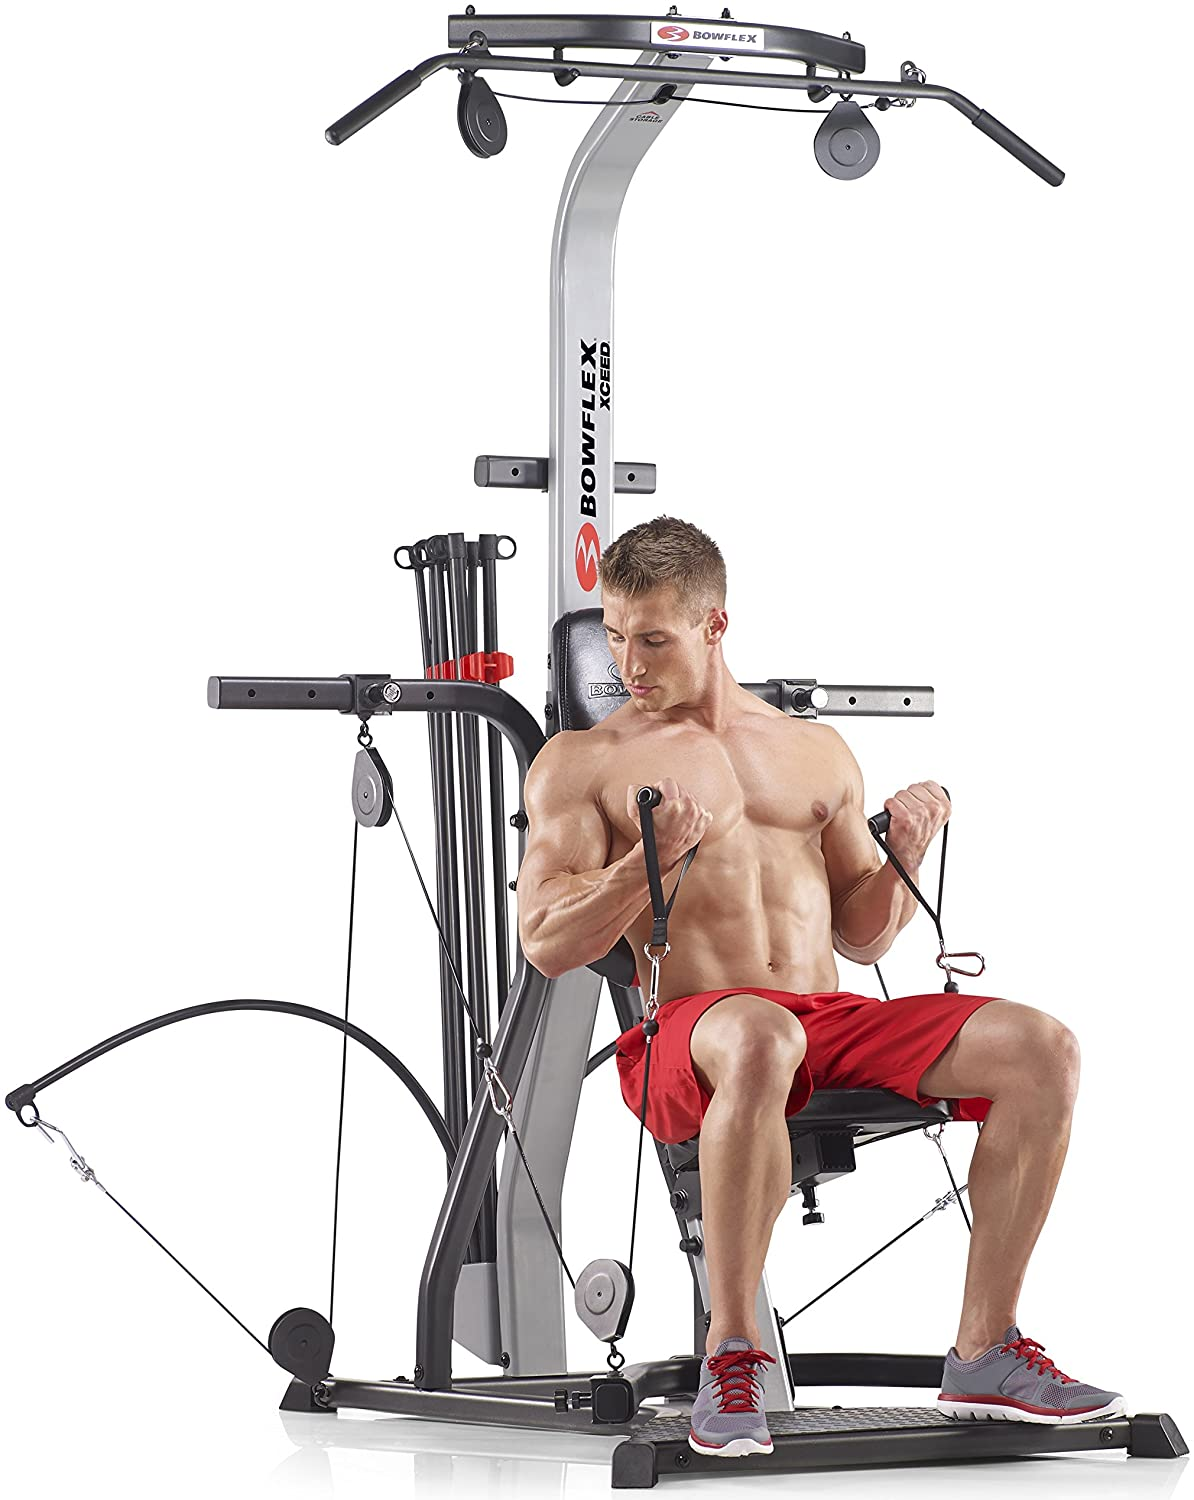 Review of Bowflex Home Gym Series